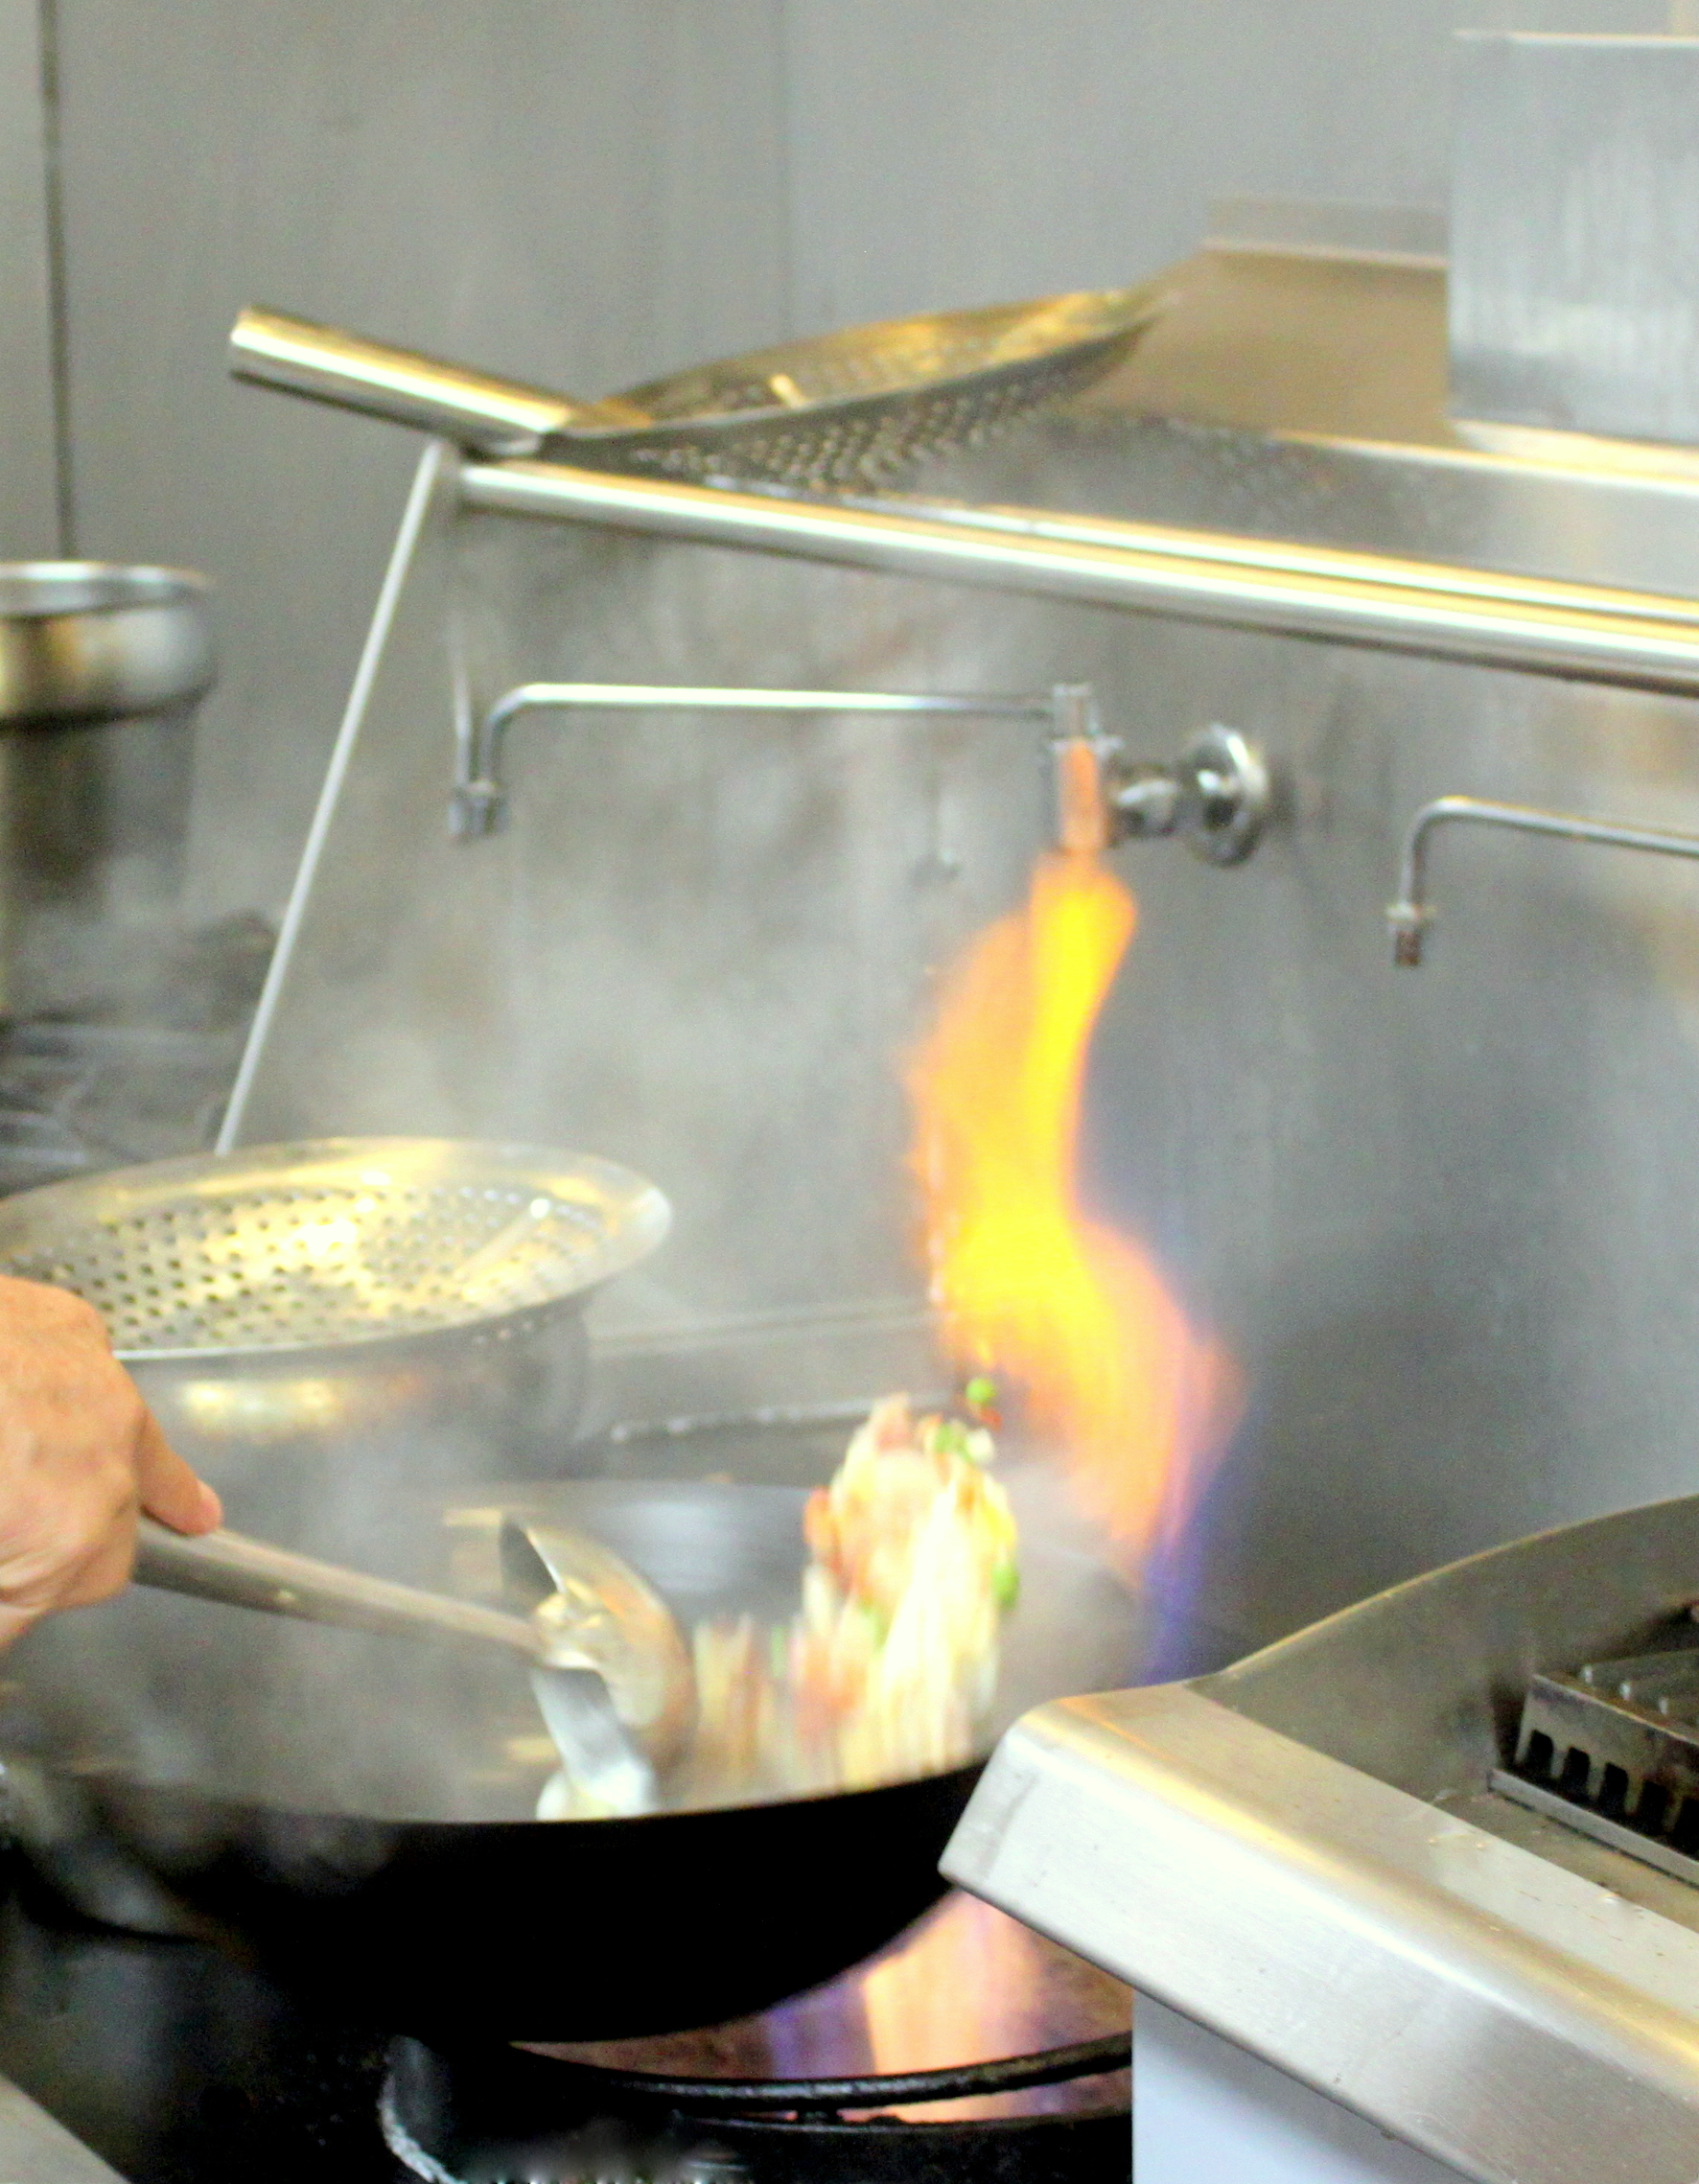 Wok seared food